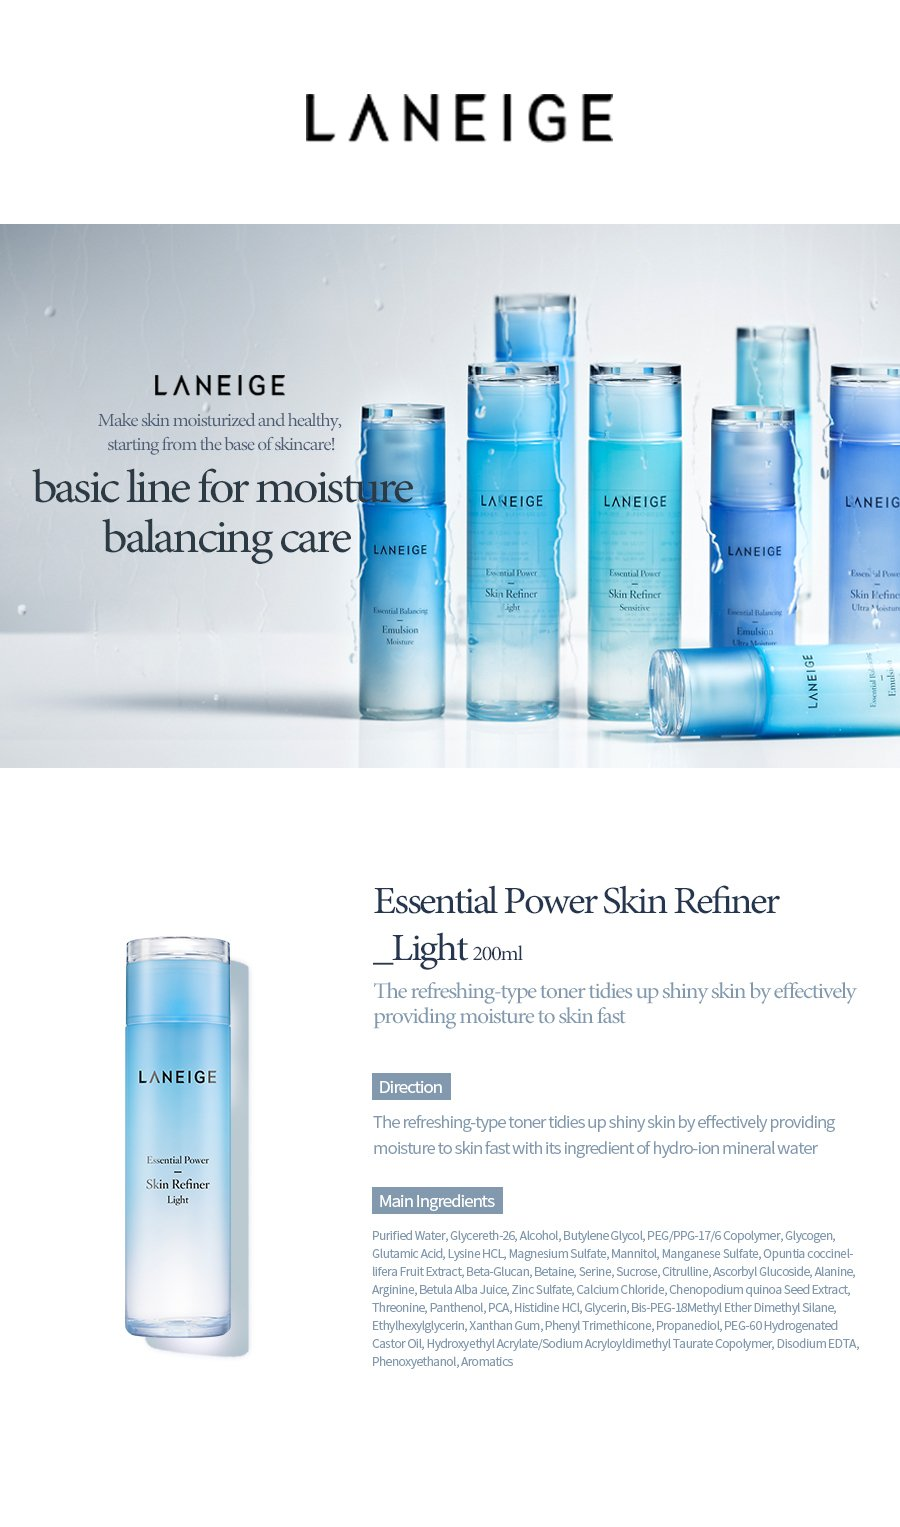 LANEIGE Power Essential Skin Refiner Light Cosme Hut Australia